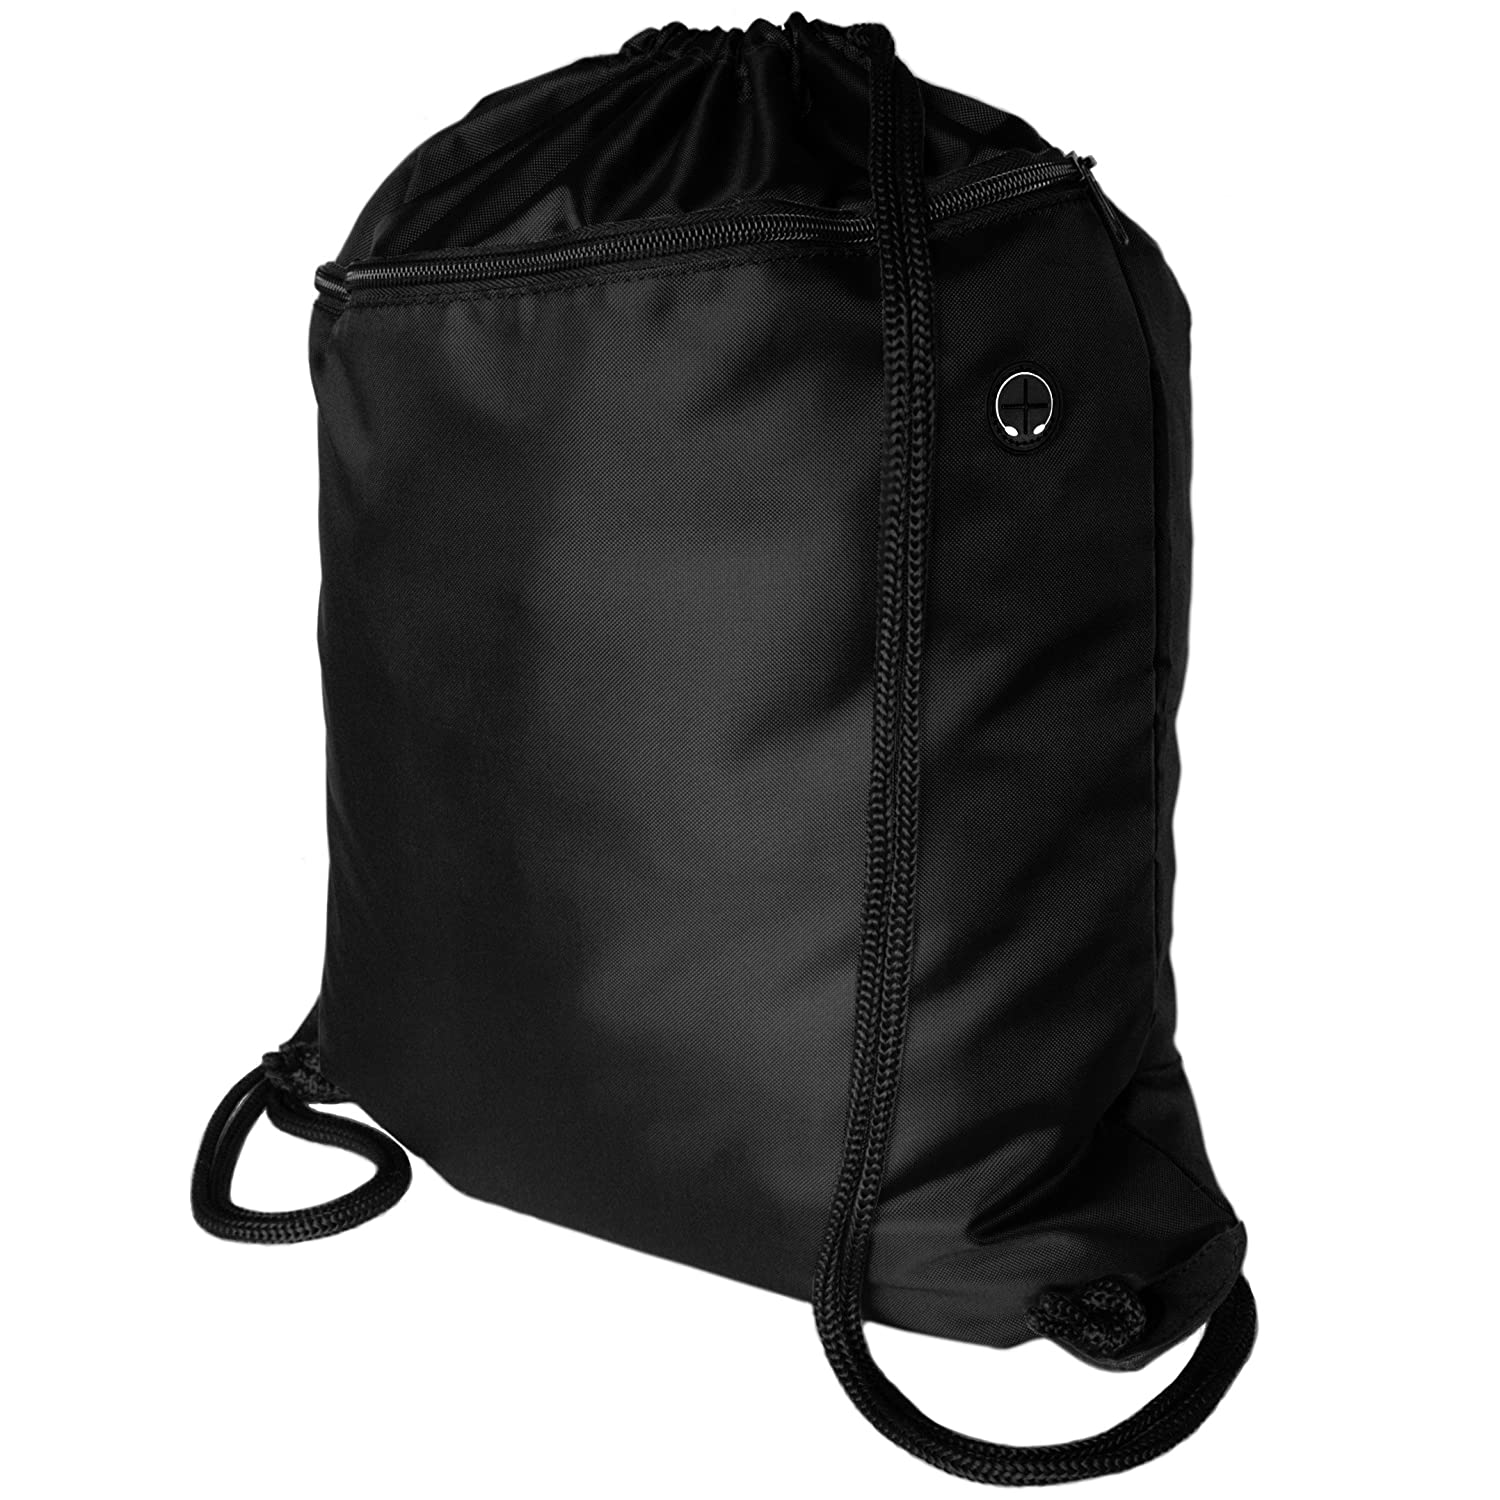 7d439a69f182 Very Strong Top Quality Drawstring Backpack Gym Bag Rucksack for Adults and  Children. Best School Kids PE Kit Bag with No Logo